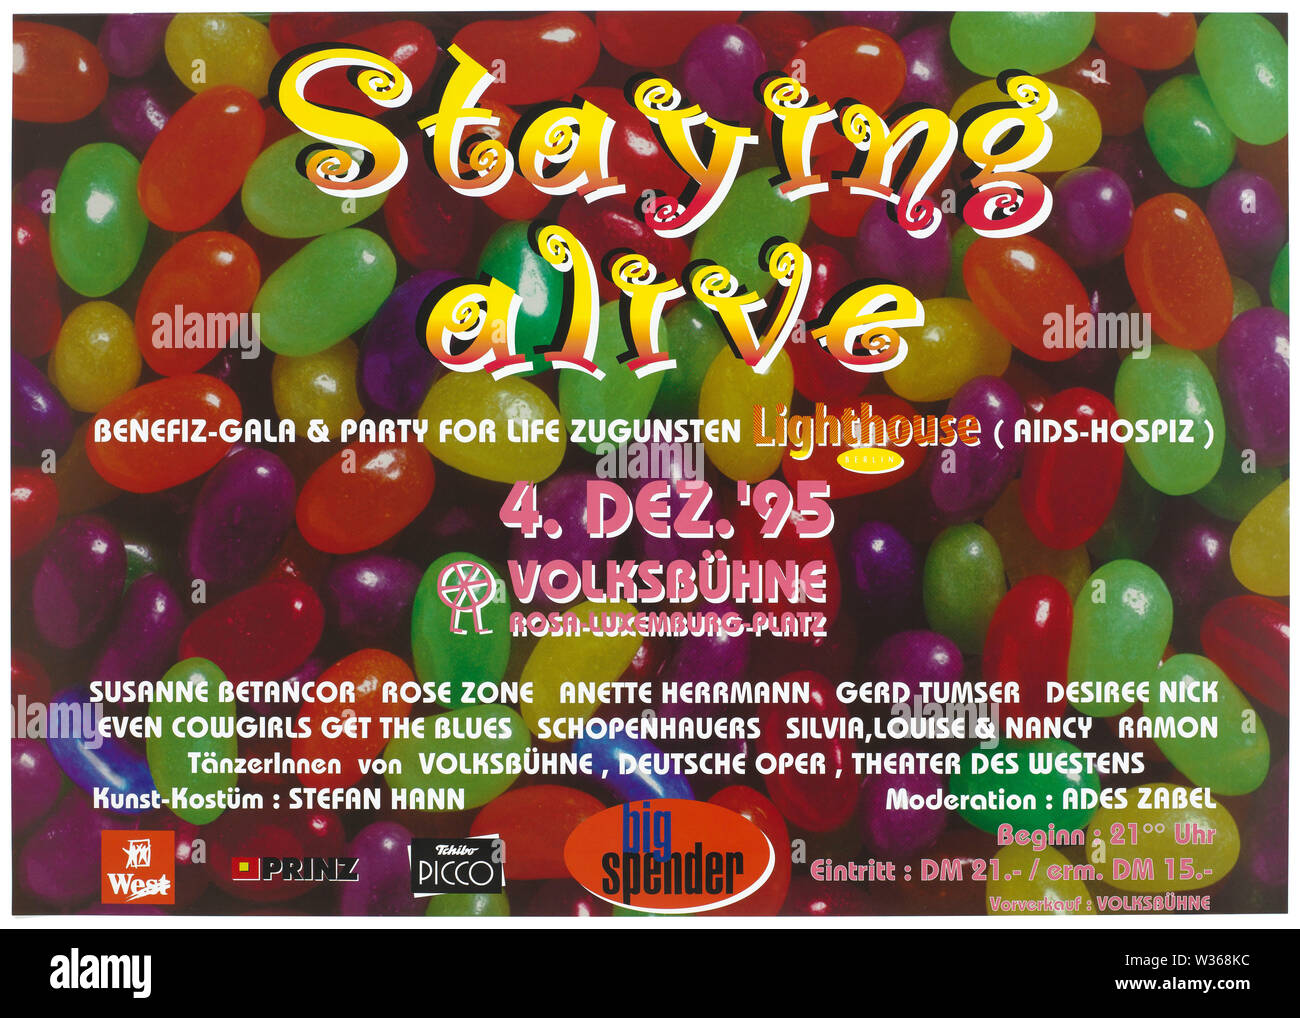 A background of multi-coloured jelly babies with the words 'Staying alive', advertising a benefit-gala in Berlin in aid of the Lighthouse AIDS hospice. Colour lithograph, 1995. - Stock Image